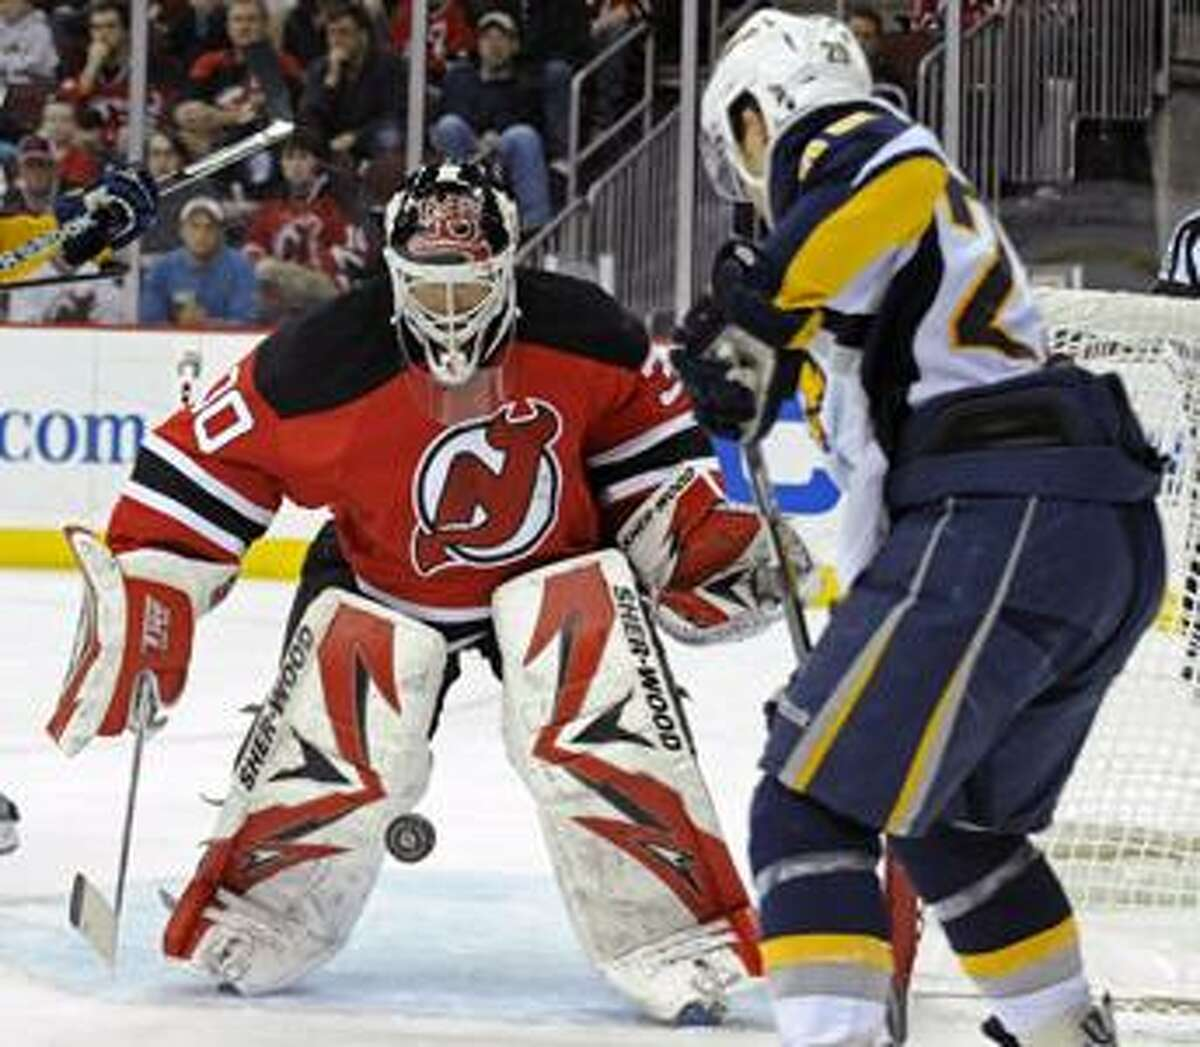 New Jersey Devils goaltender Martin Brodeur stops a shot from Buffalo Sabres' Jason Pominville, right, during the first period of an NHL hockey game Sunday, April 11, 2010 in Newark, N.J. (AP Photo/Bill Kostroun)